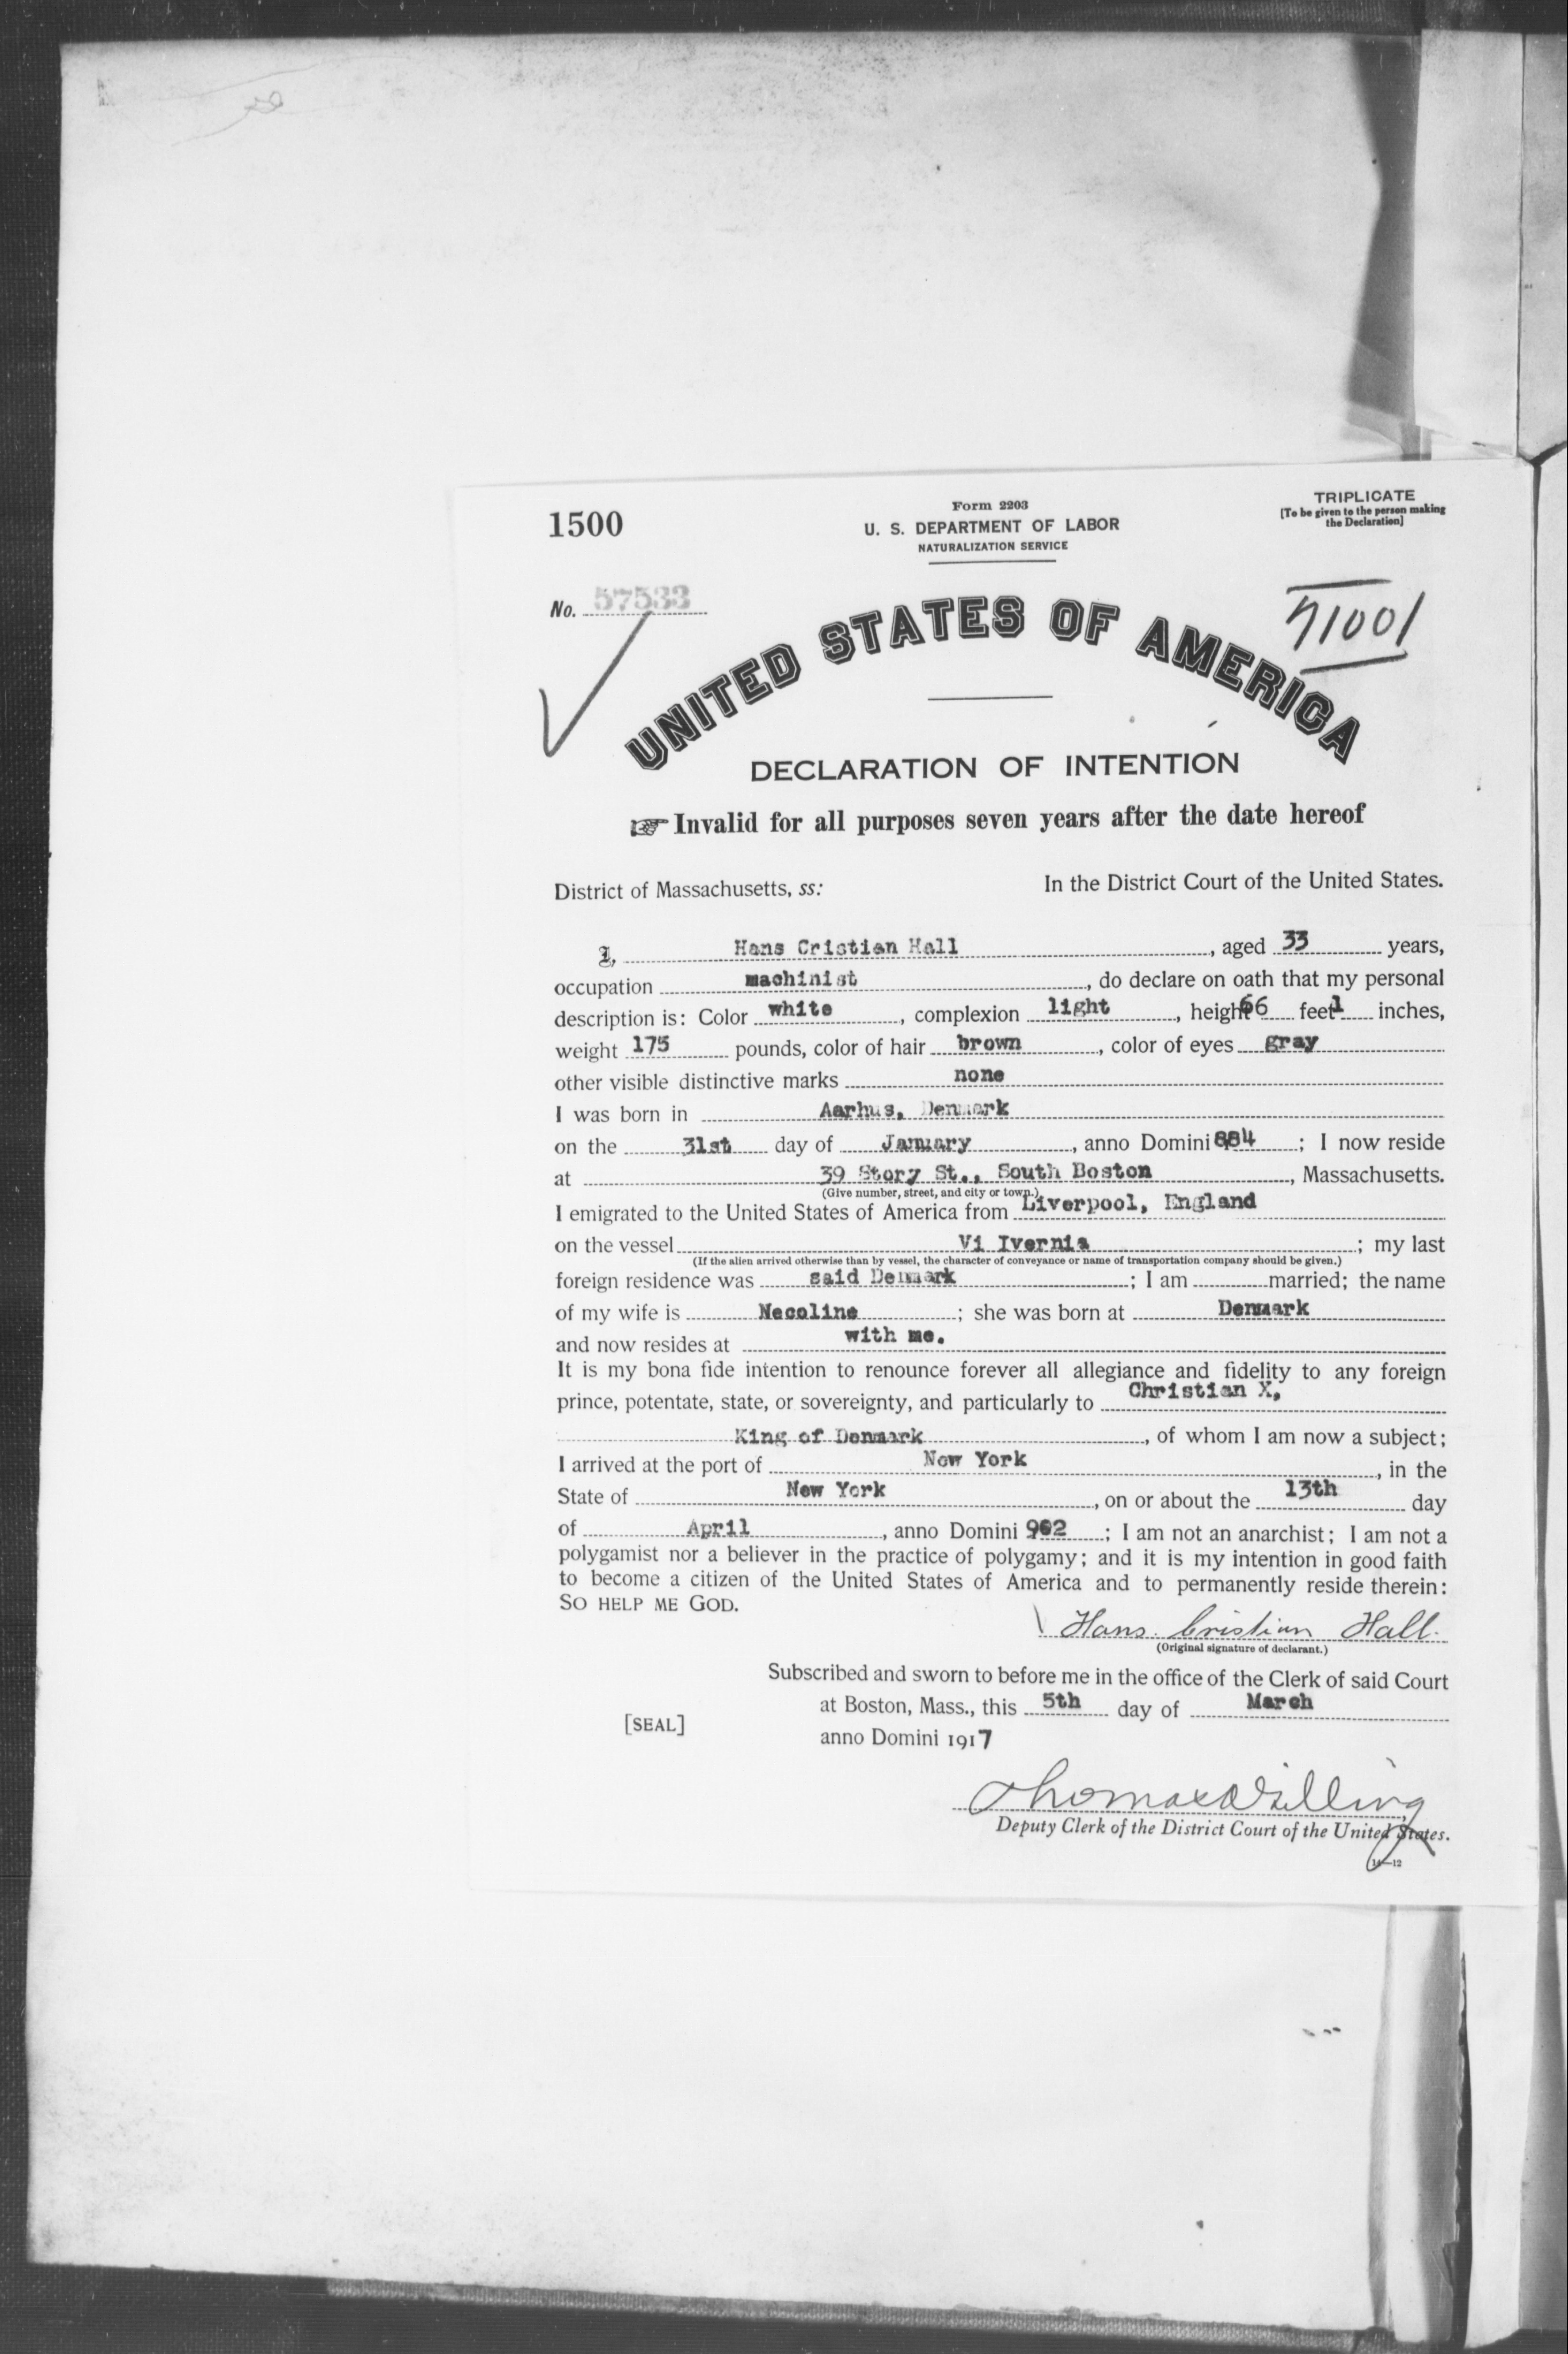 Petition for Naturalization of Hans Cristian Hall